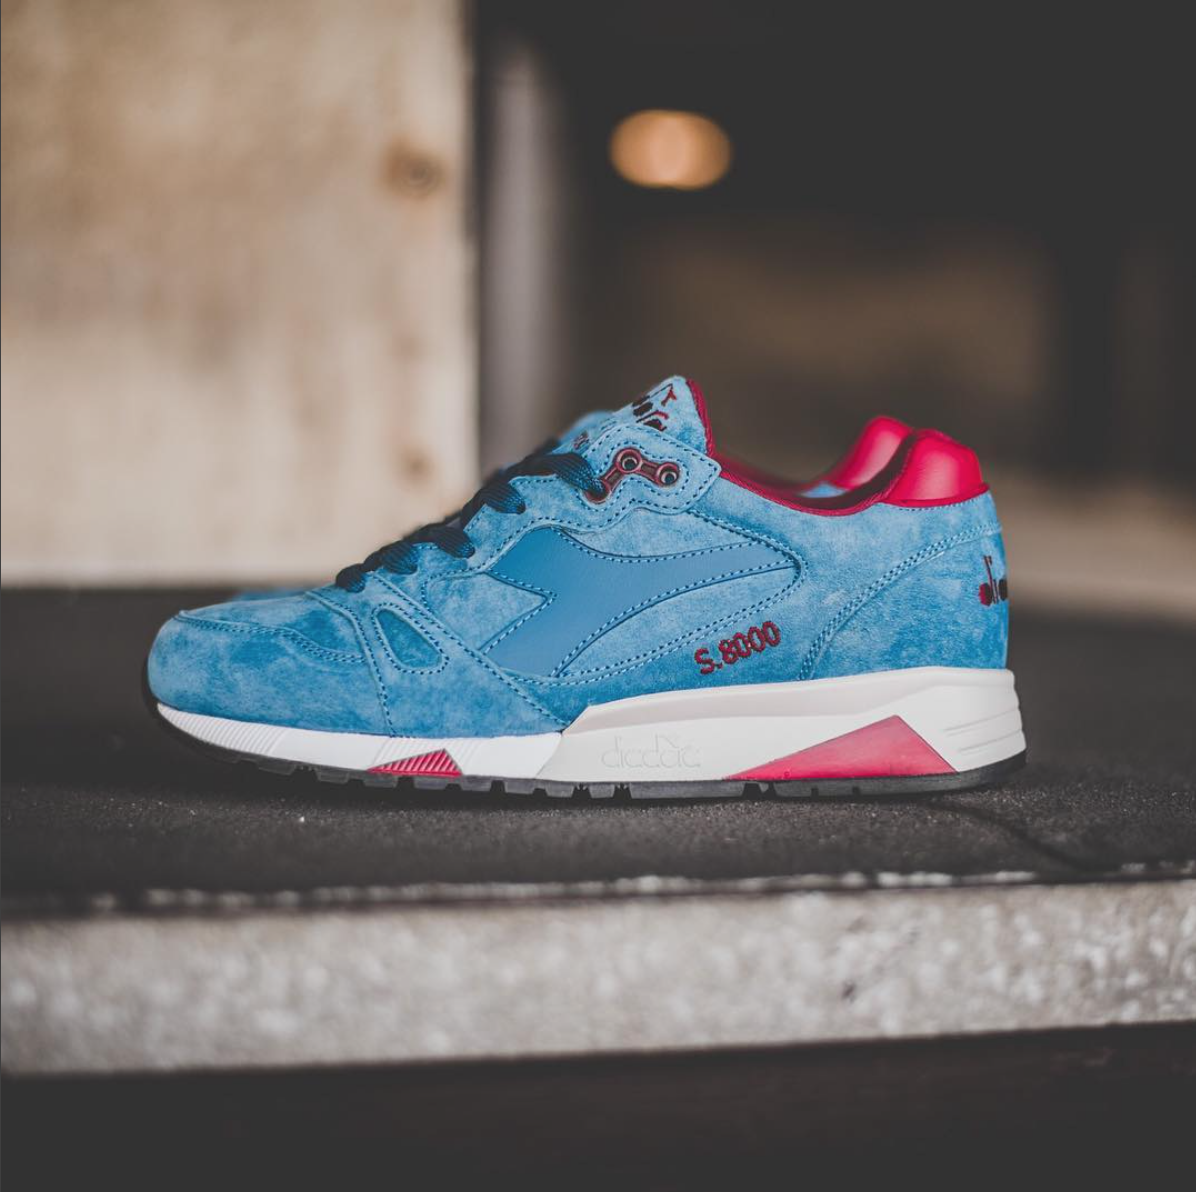 Diadora S.8000 Italia is Now Available in 'Enisgn Blue